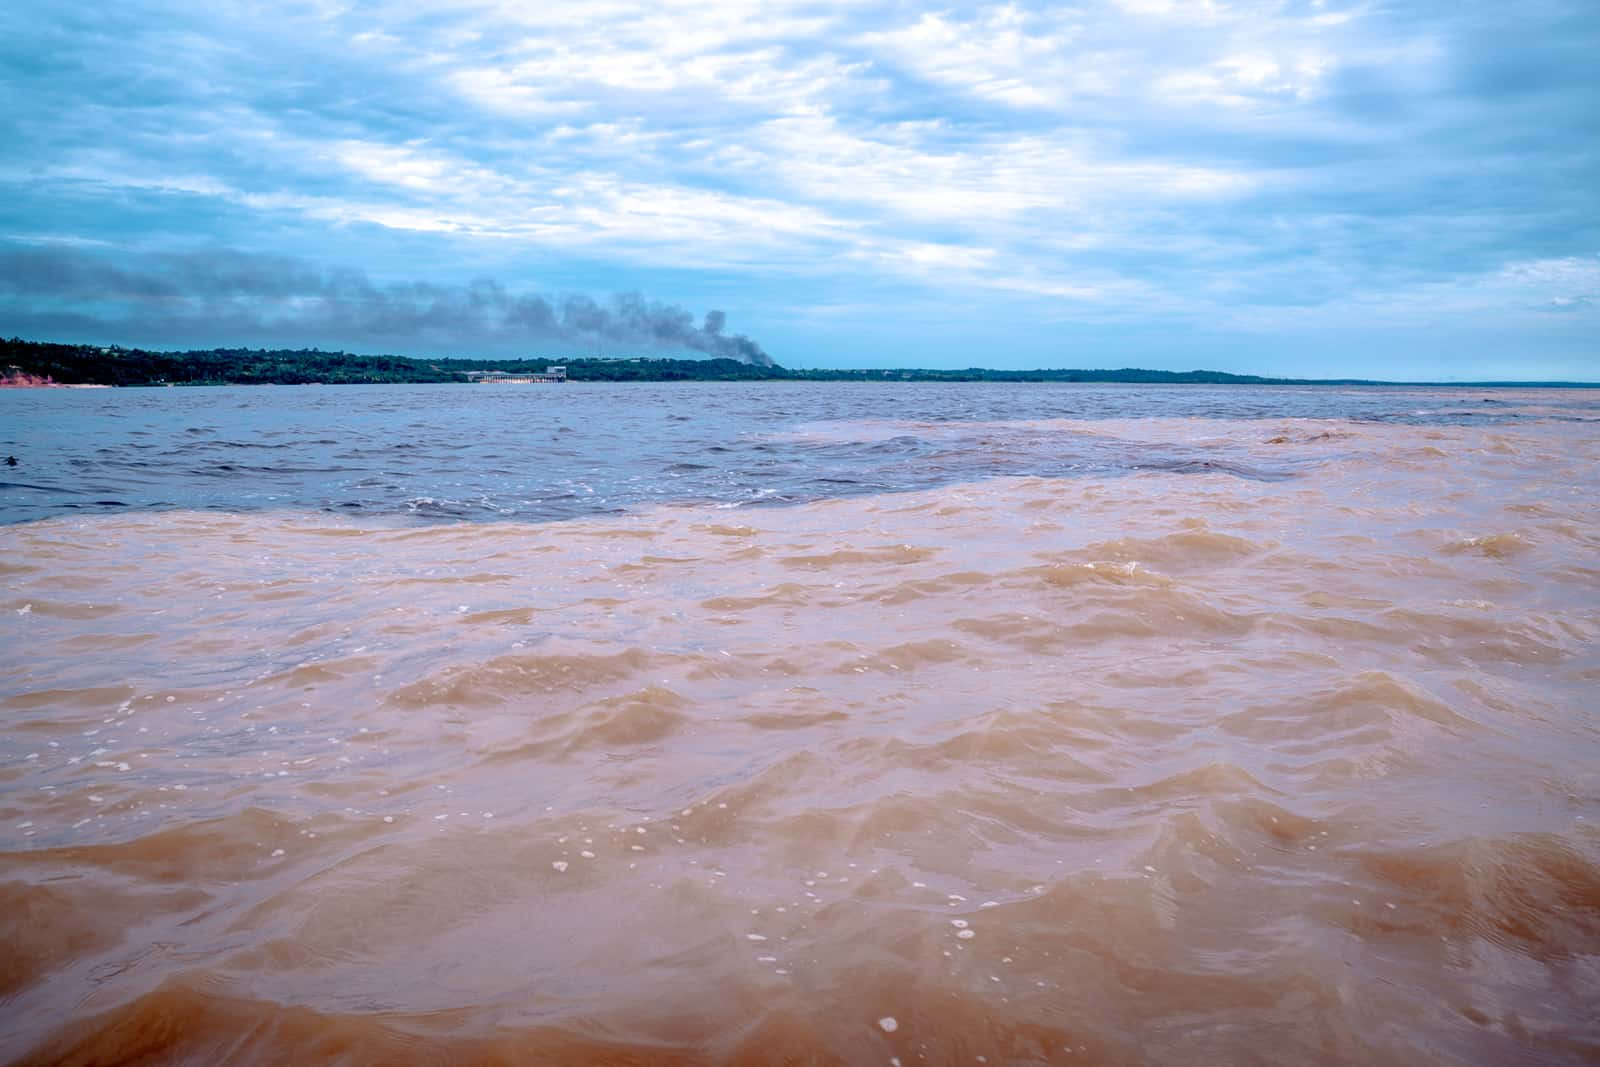 Brazil - Manaus - Meeting of the Waters